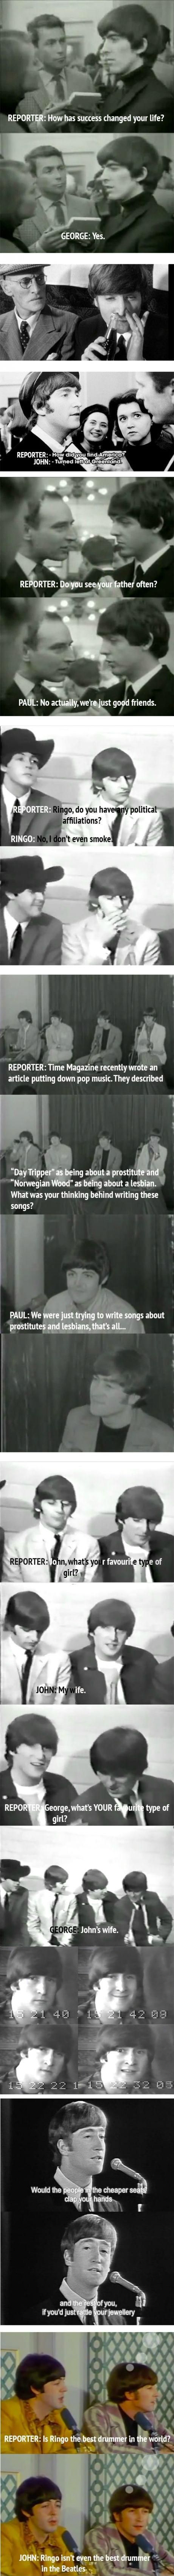 Witty comebacks from The Beatles during interviews.